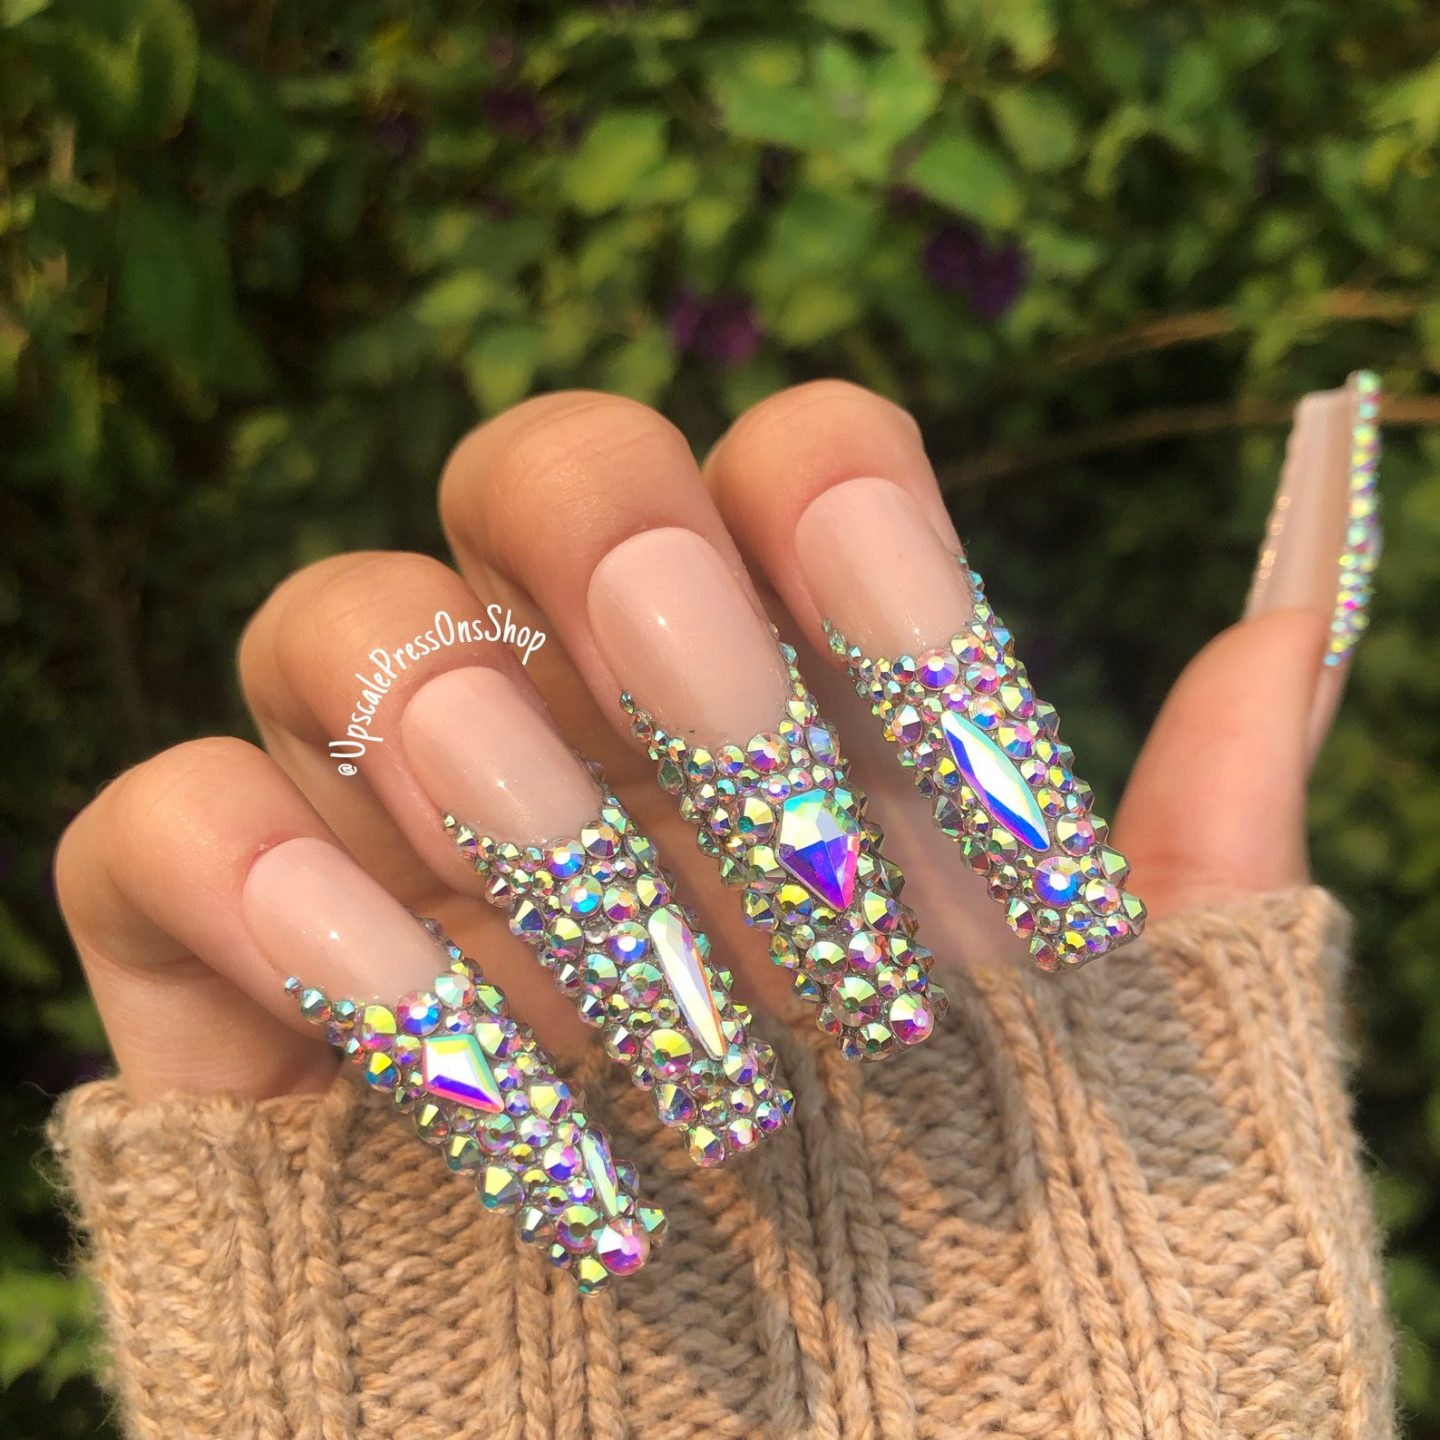 Long nude coffin nails with rhinestones and crystals